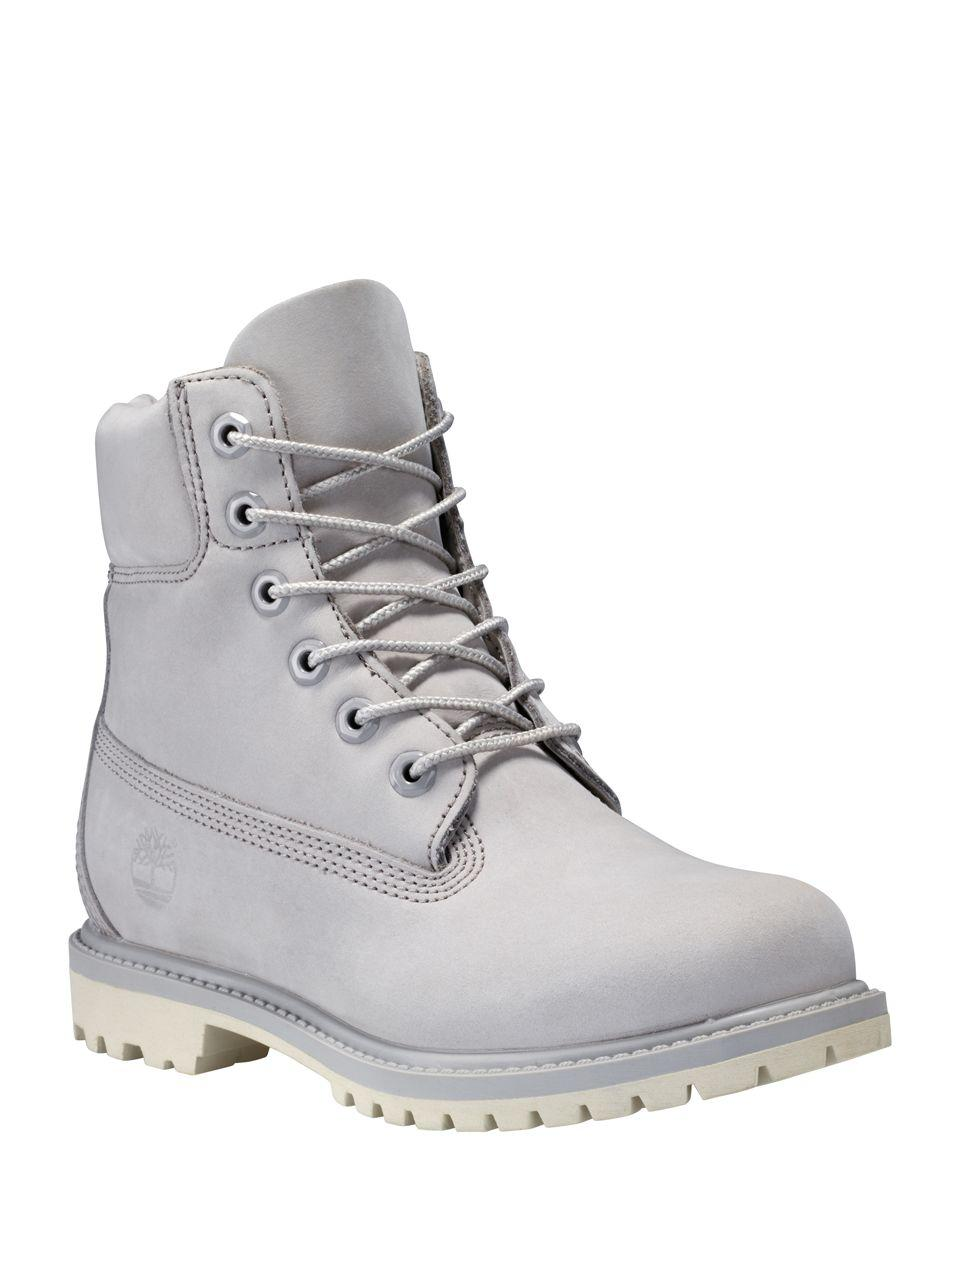 Lyst Timberland Icon Premium Leather High Top Boots In